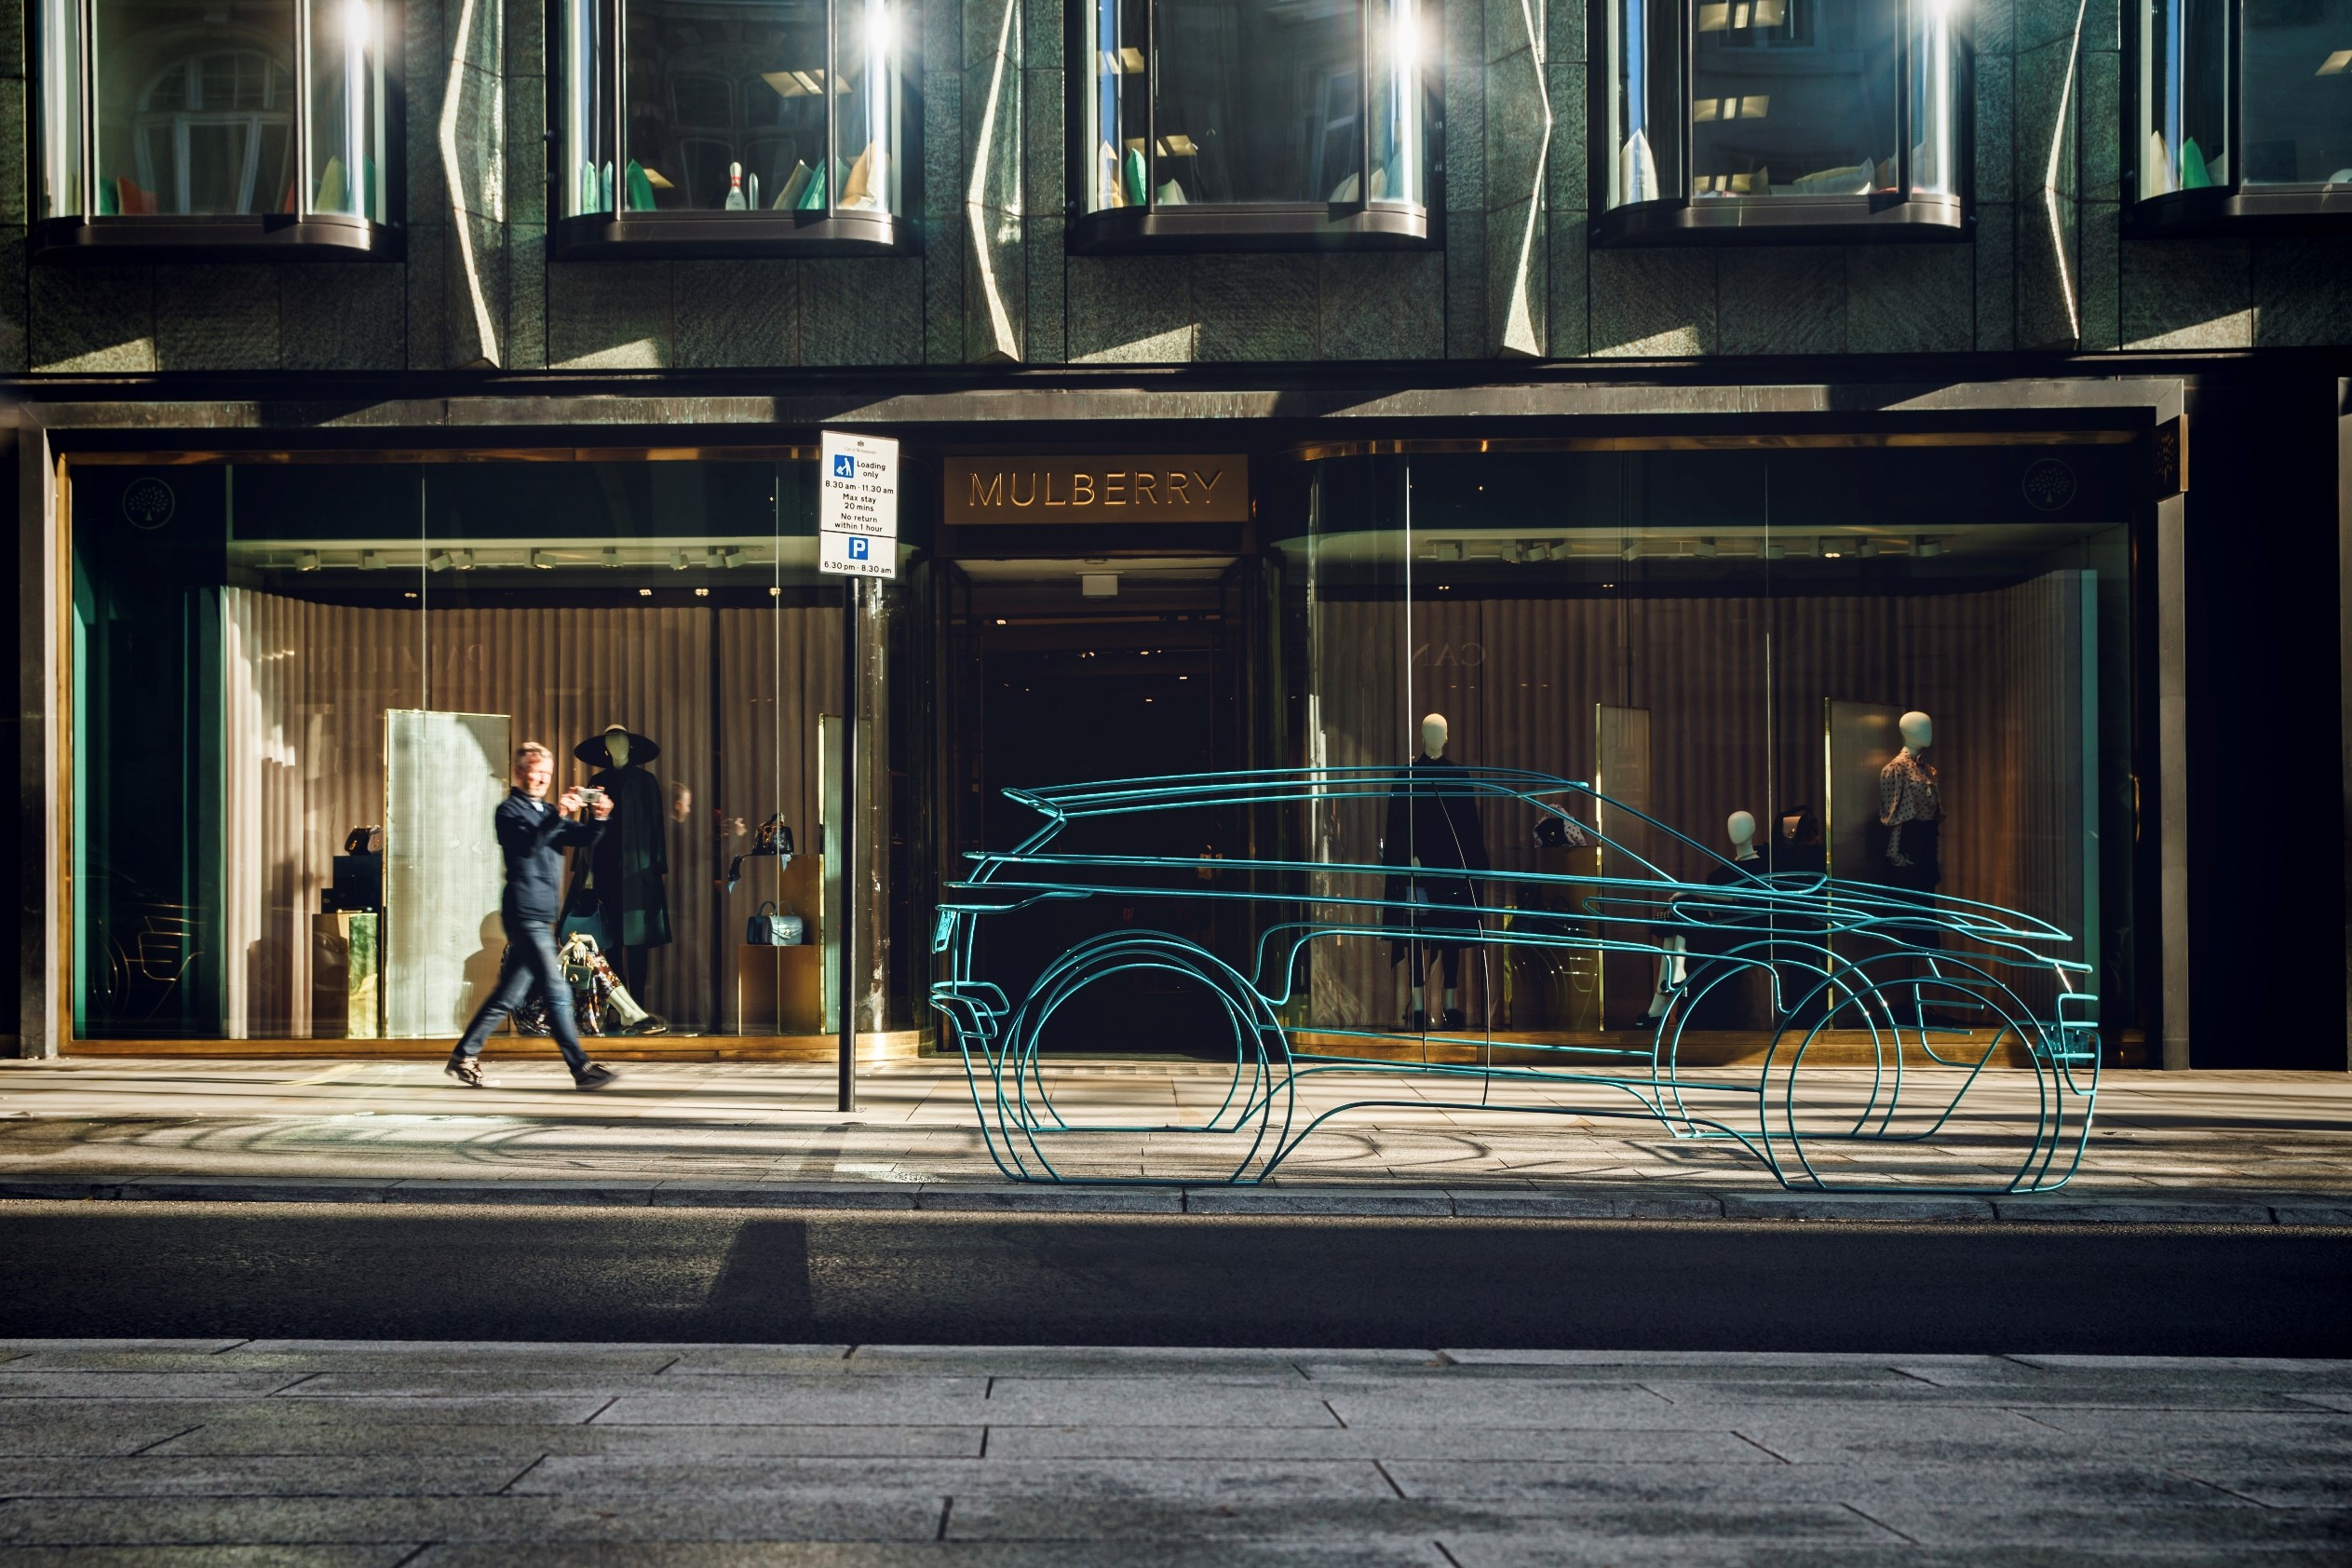 Land Rover teases new Evoque with full-scale wireframe sculptures